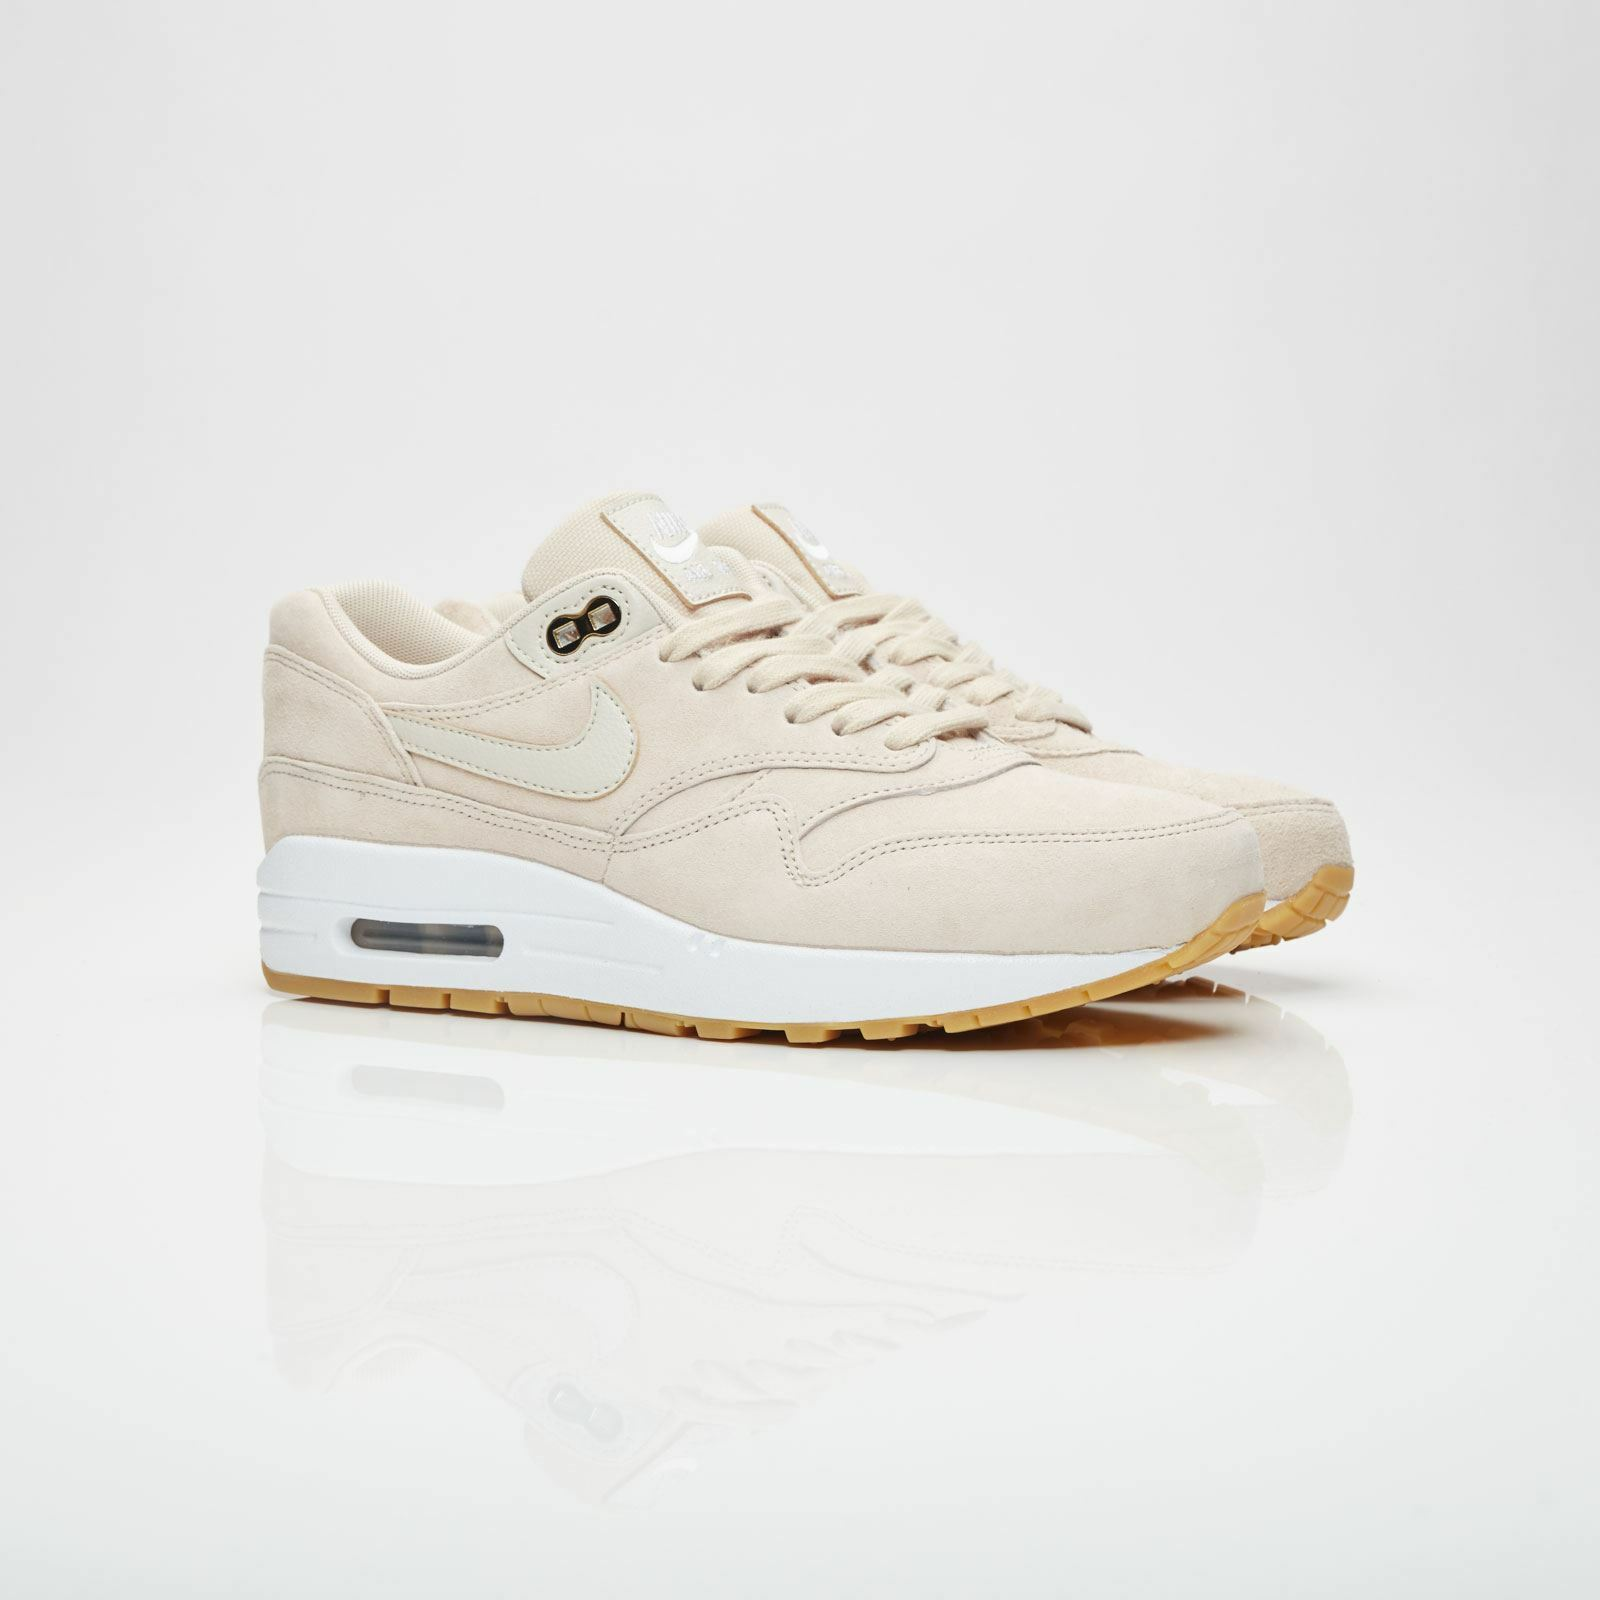 Nike Womens Air Max 1 SD Oatmeal Trainers 919484 100